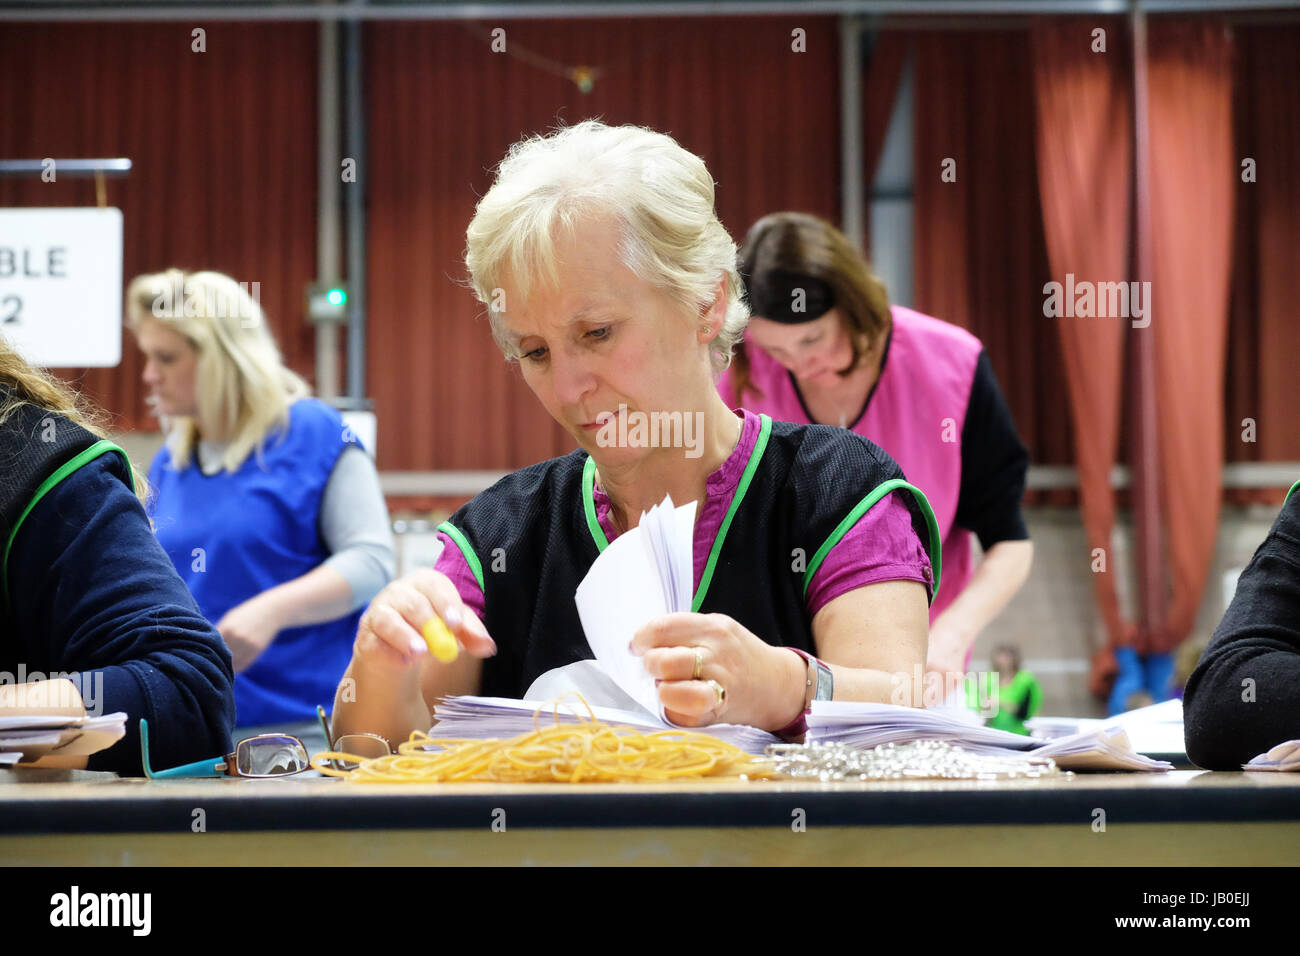 Hereford, Herefordshire, UK - Thursday 8th June 2017 - Counting staff begin the process of counting the votes per - Stock Image